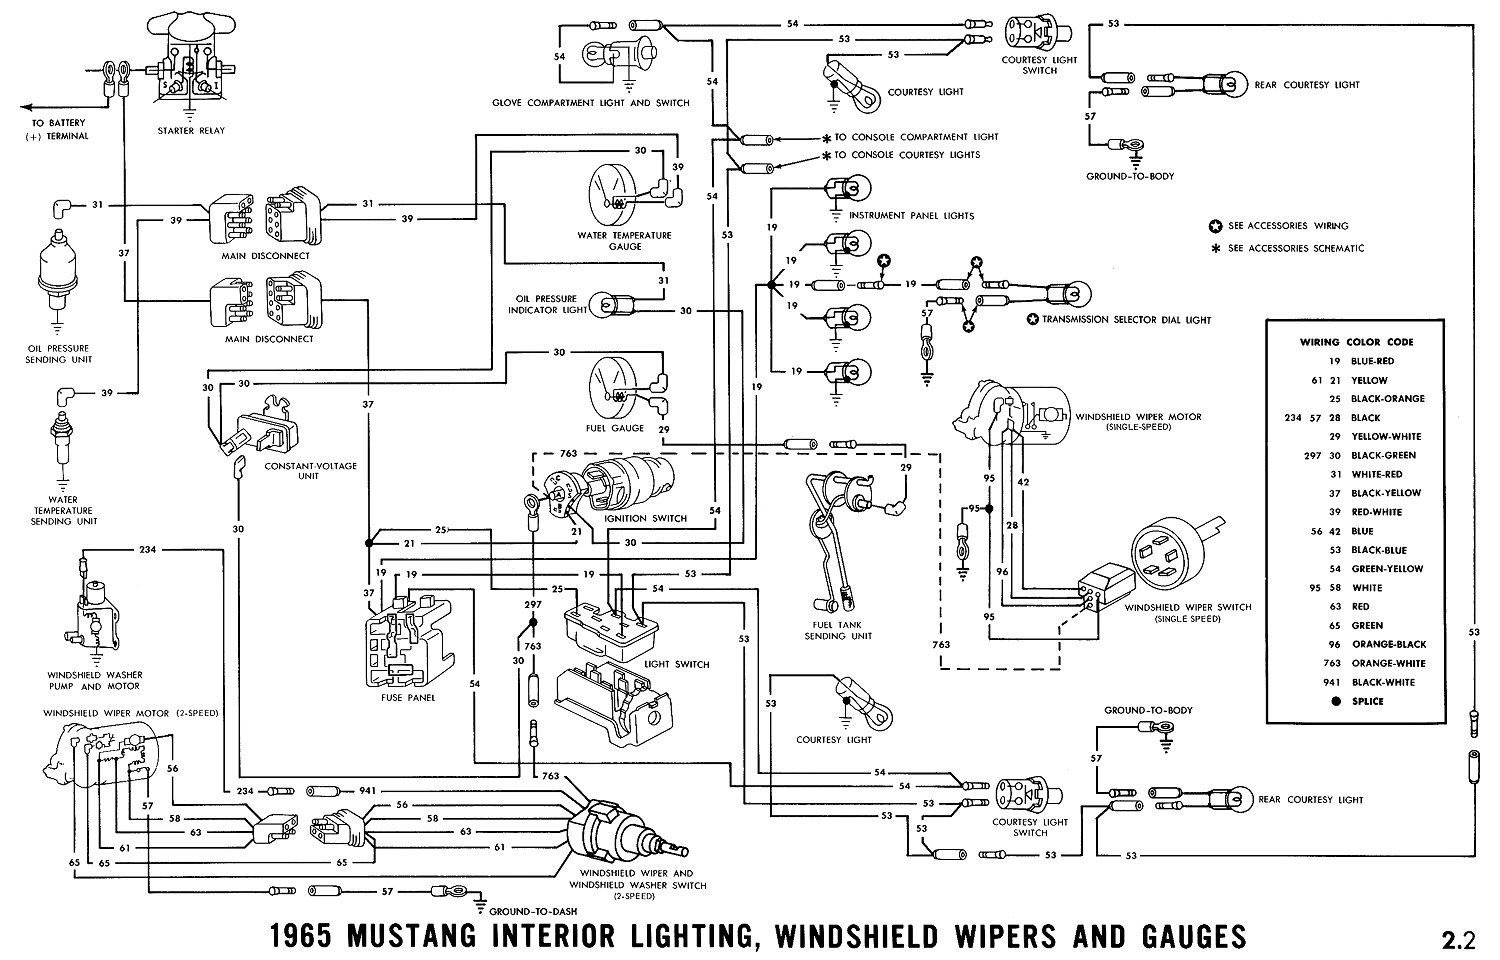 1984 Mustang Fuse Box Archive Of Automotive Wiring Diagram K5 Blazer 1965 Ignition Schematic Rh Asparklingjourney Com